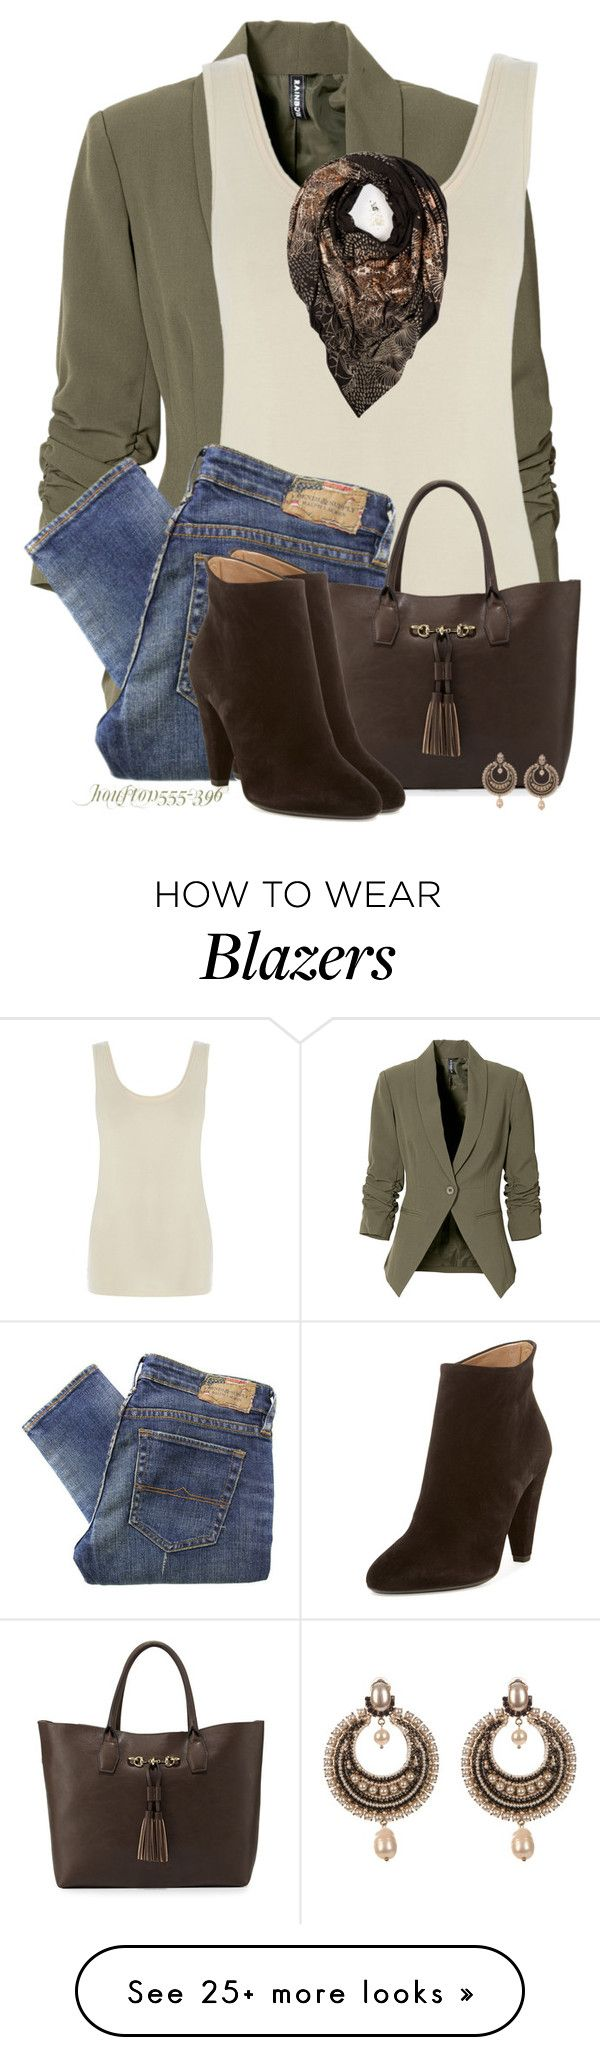 """""""Suede Booties"""" by houston555-396 on Polyvore featuring moda, Oasis, Sophie Darling, Denim & Supply by Ralph Lauren, Neiman Marcus, Jill Stuart e Givenchy"""